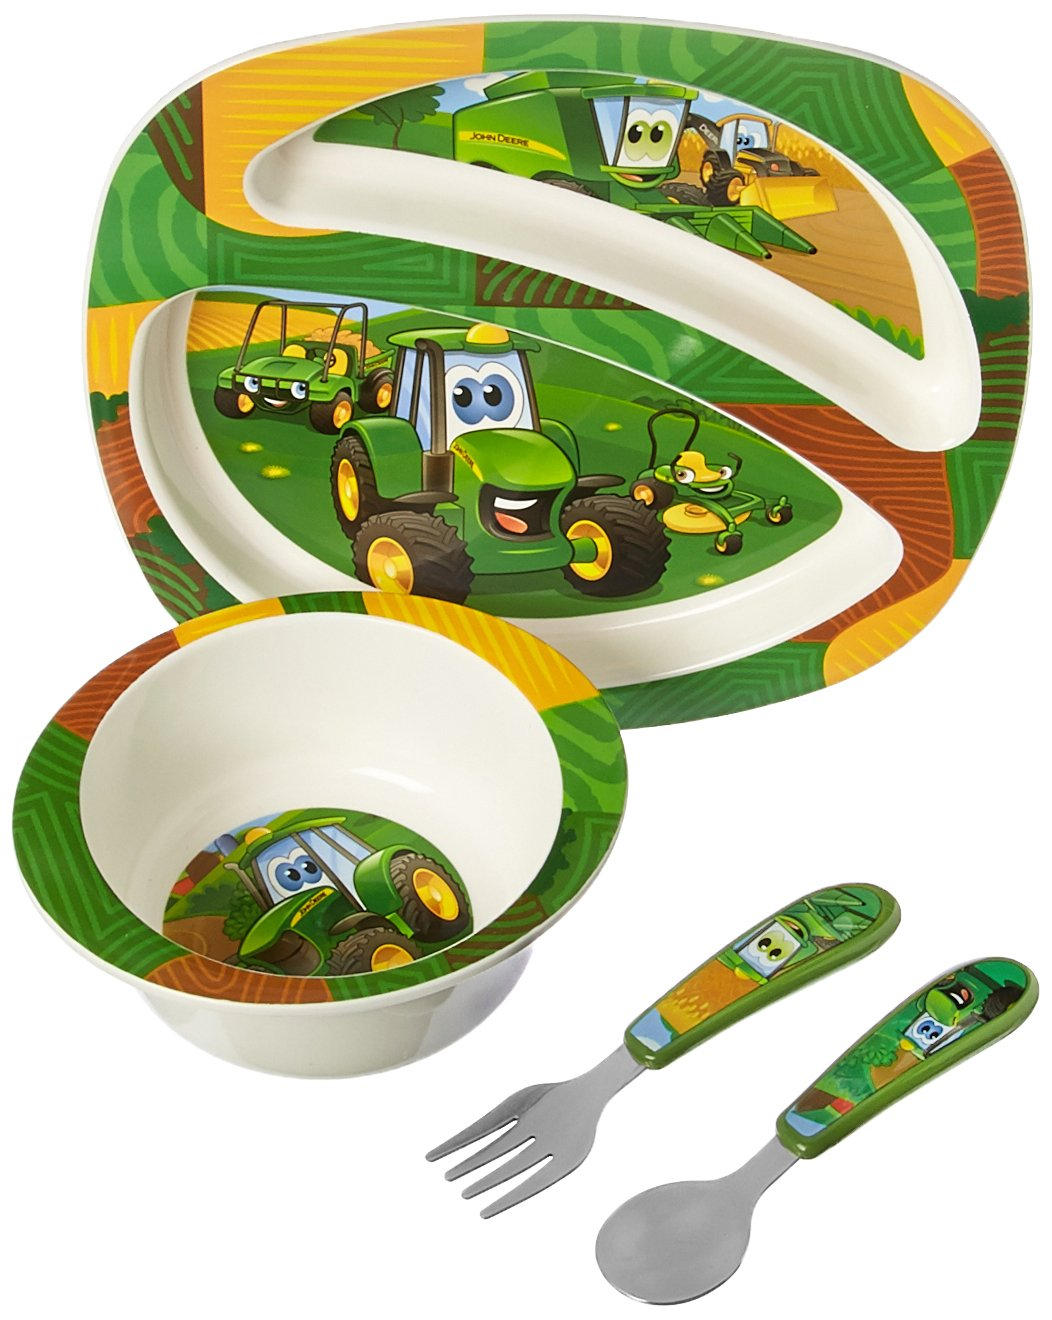 John Deere's Johnny Tractor and Friends Feeding 4 Piece Set, Green, Brown, Yellow, Blue, White, Red Tomy Y10649A1